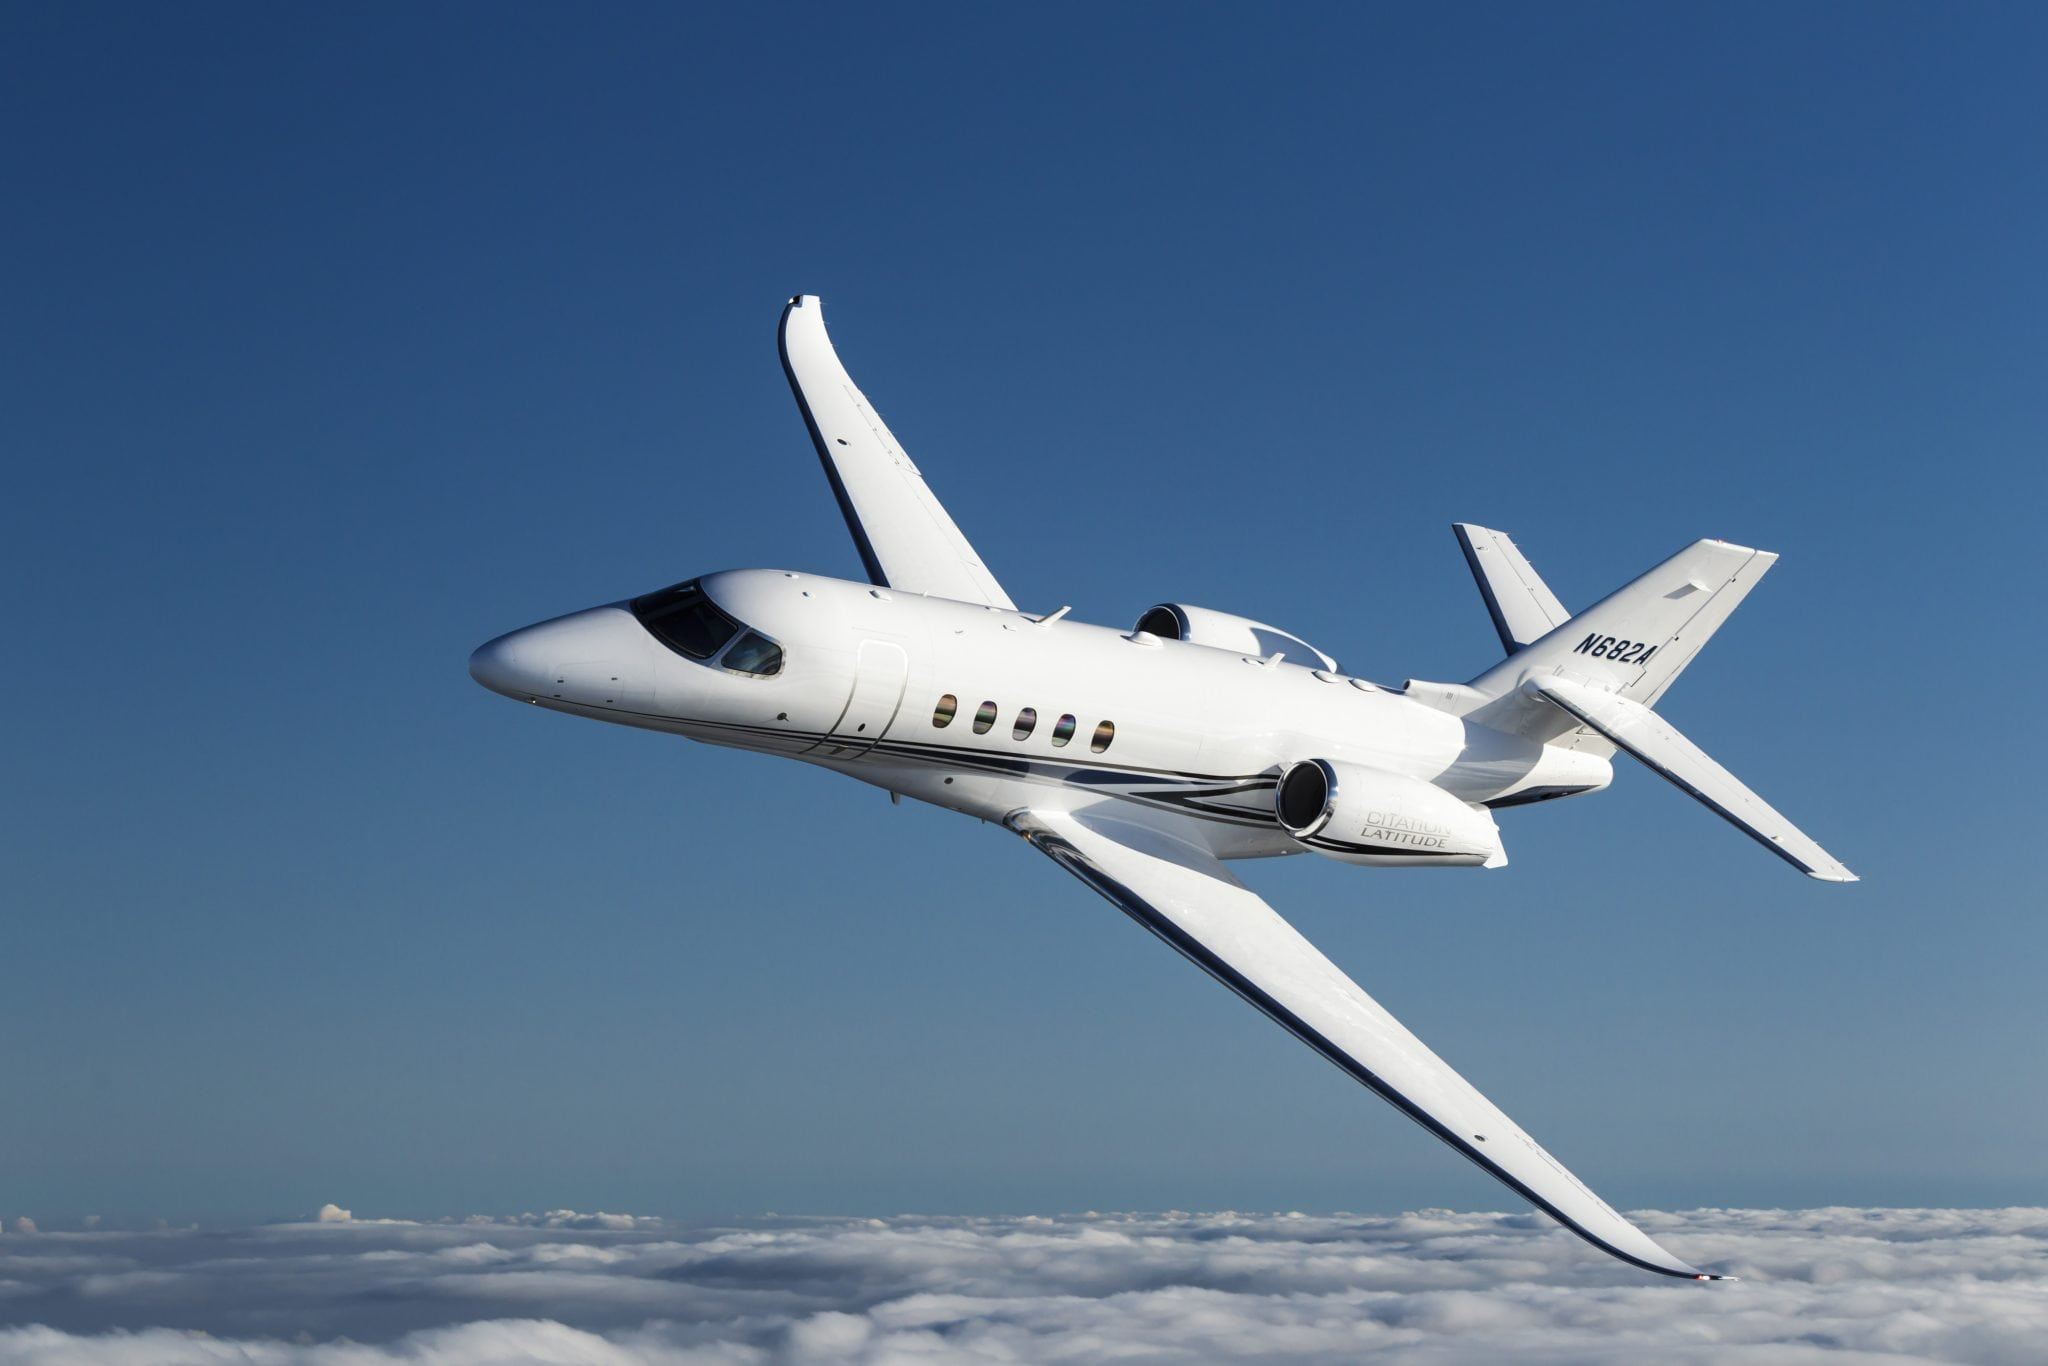 Cessna's Citation Latitude has received EASA certification